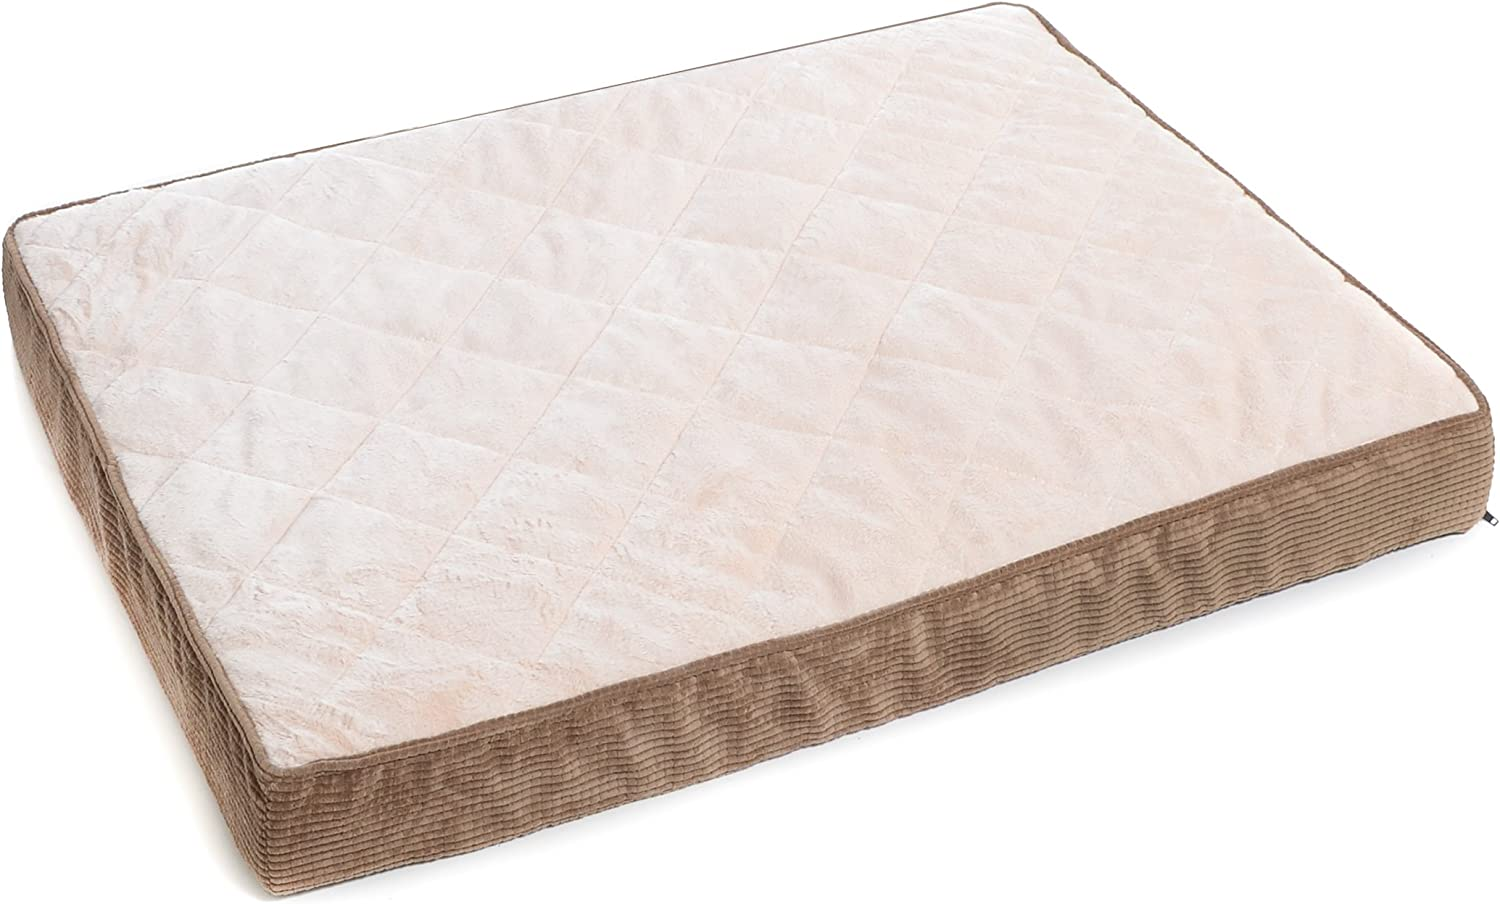 Milliard Quilted Padded Orthopedic Dog Bed, Egg Crate Foam with Plush Pillow Top Washable Cover   Fits Standard Crate